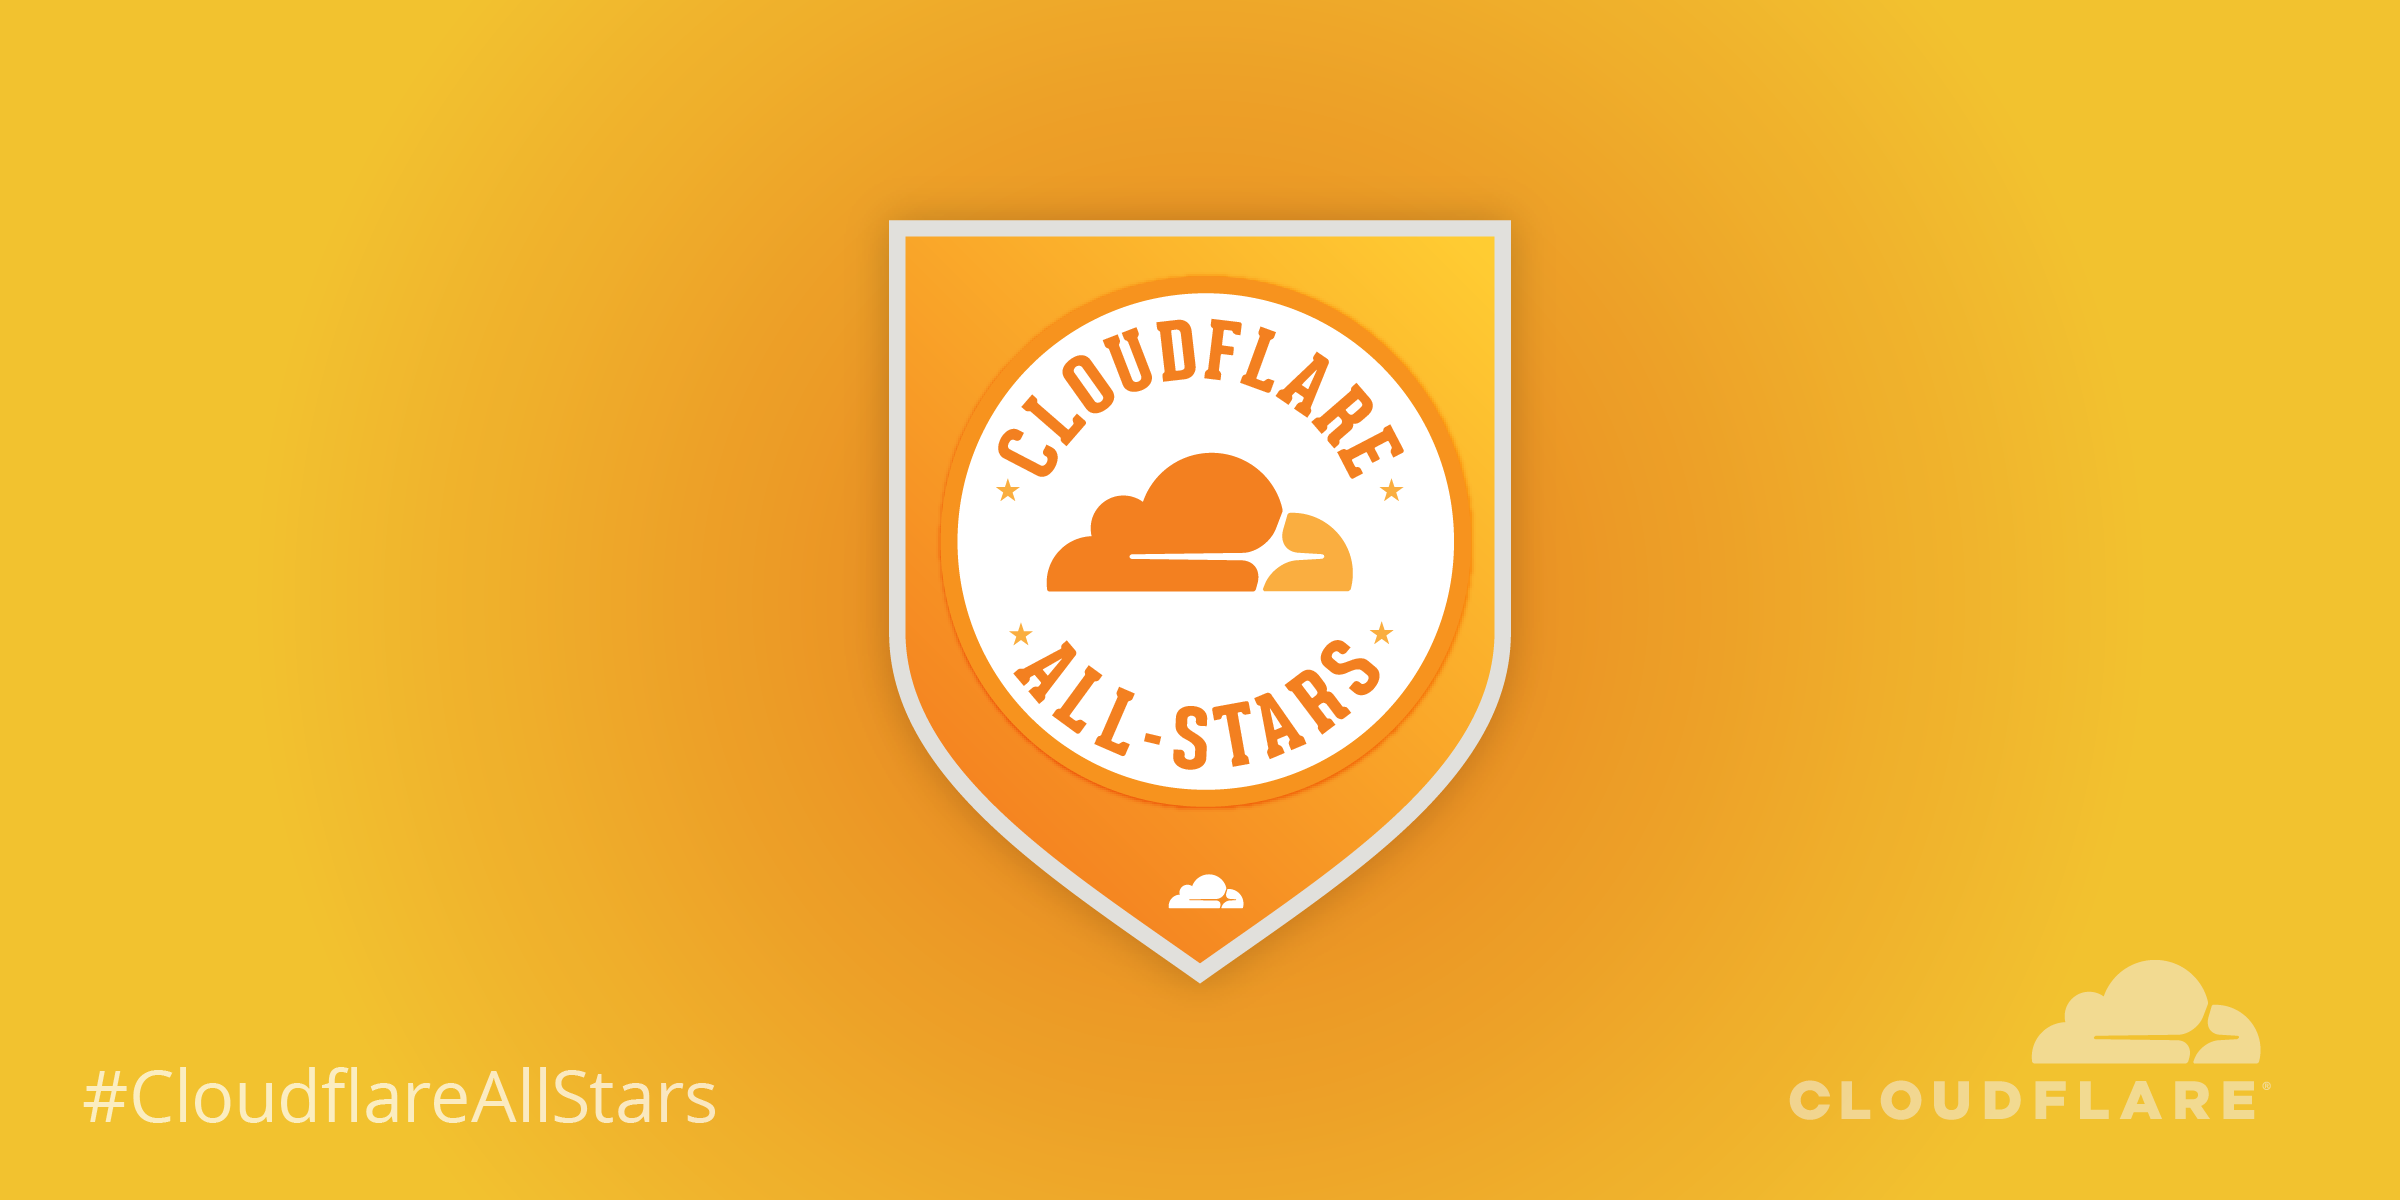 Introducing: The Cloudflare All-Stars Fantasy League